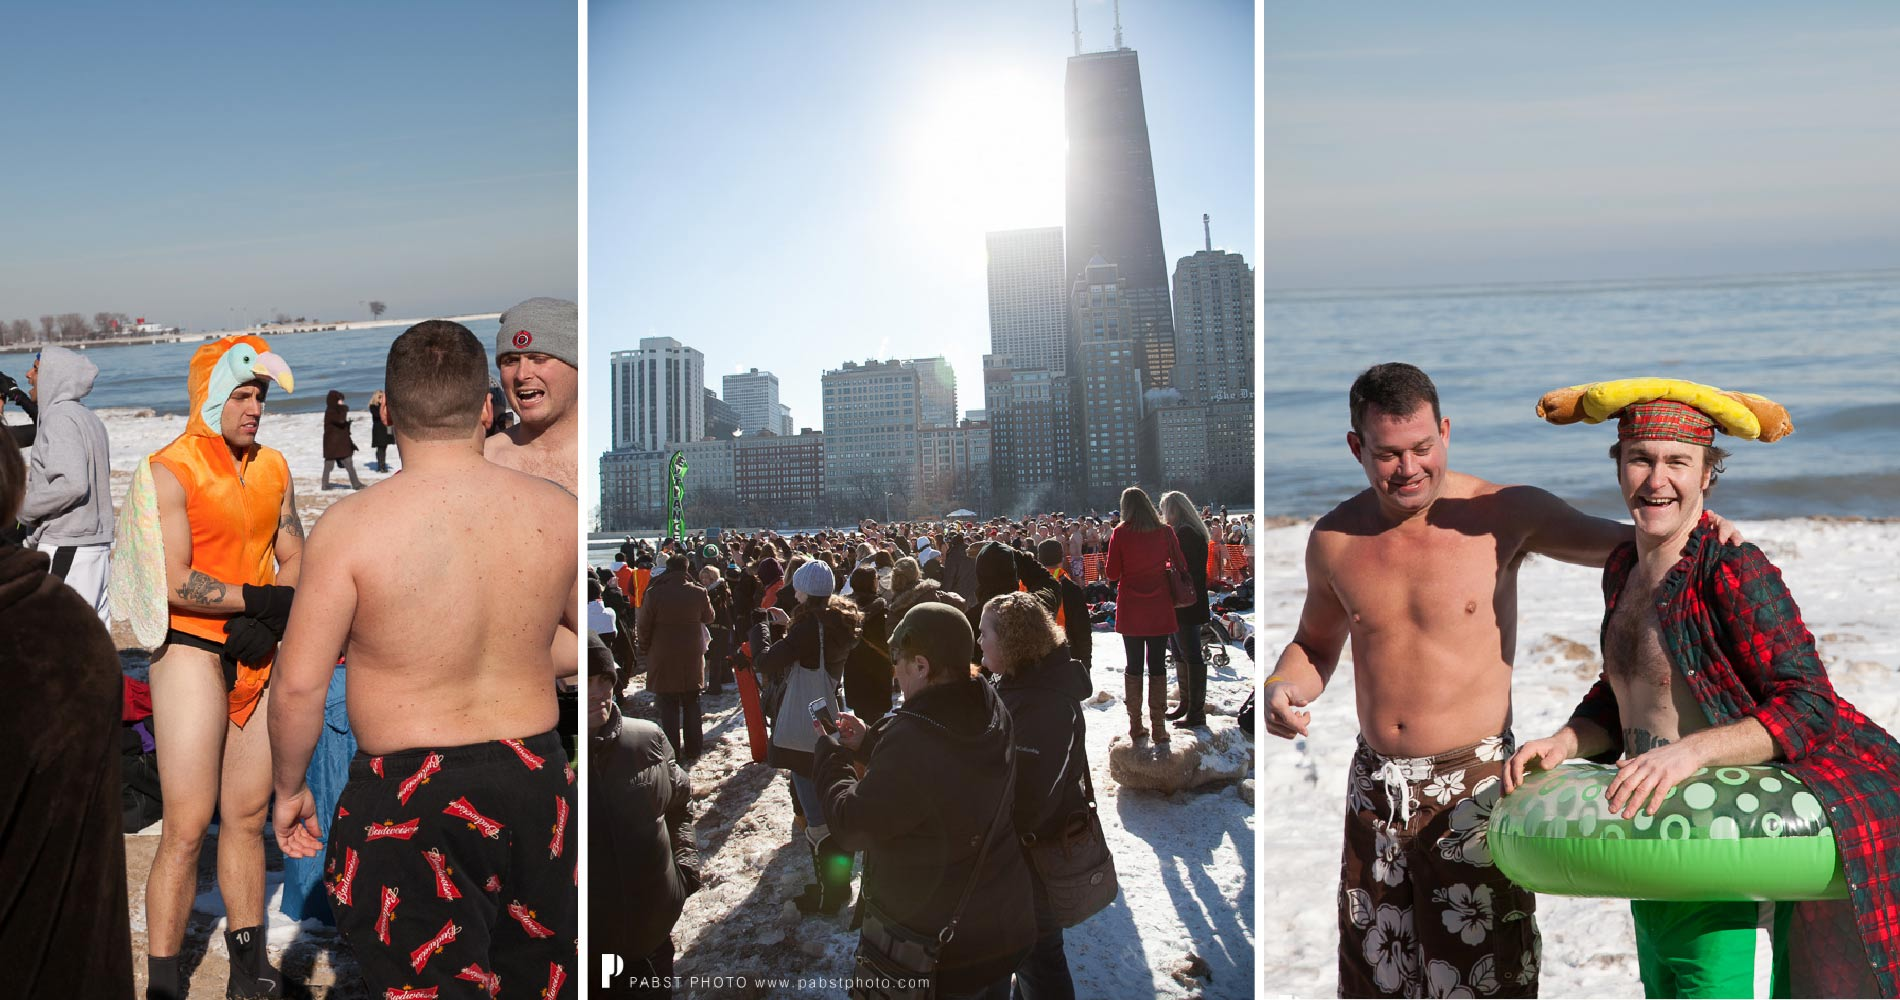 Polar-Plunge-2013-Chicago-Pabst-Photo-series_1